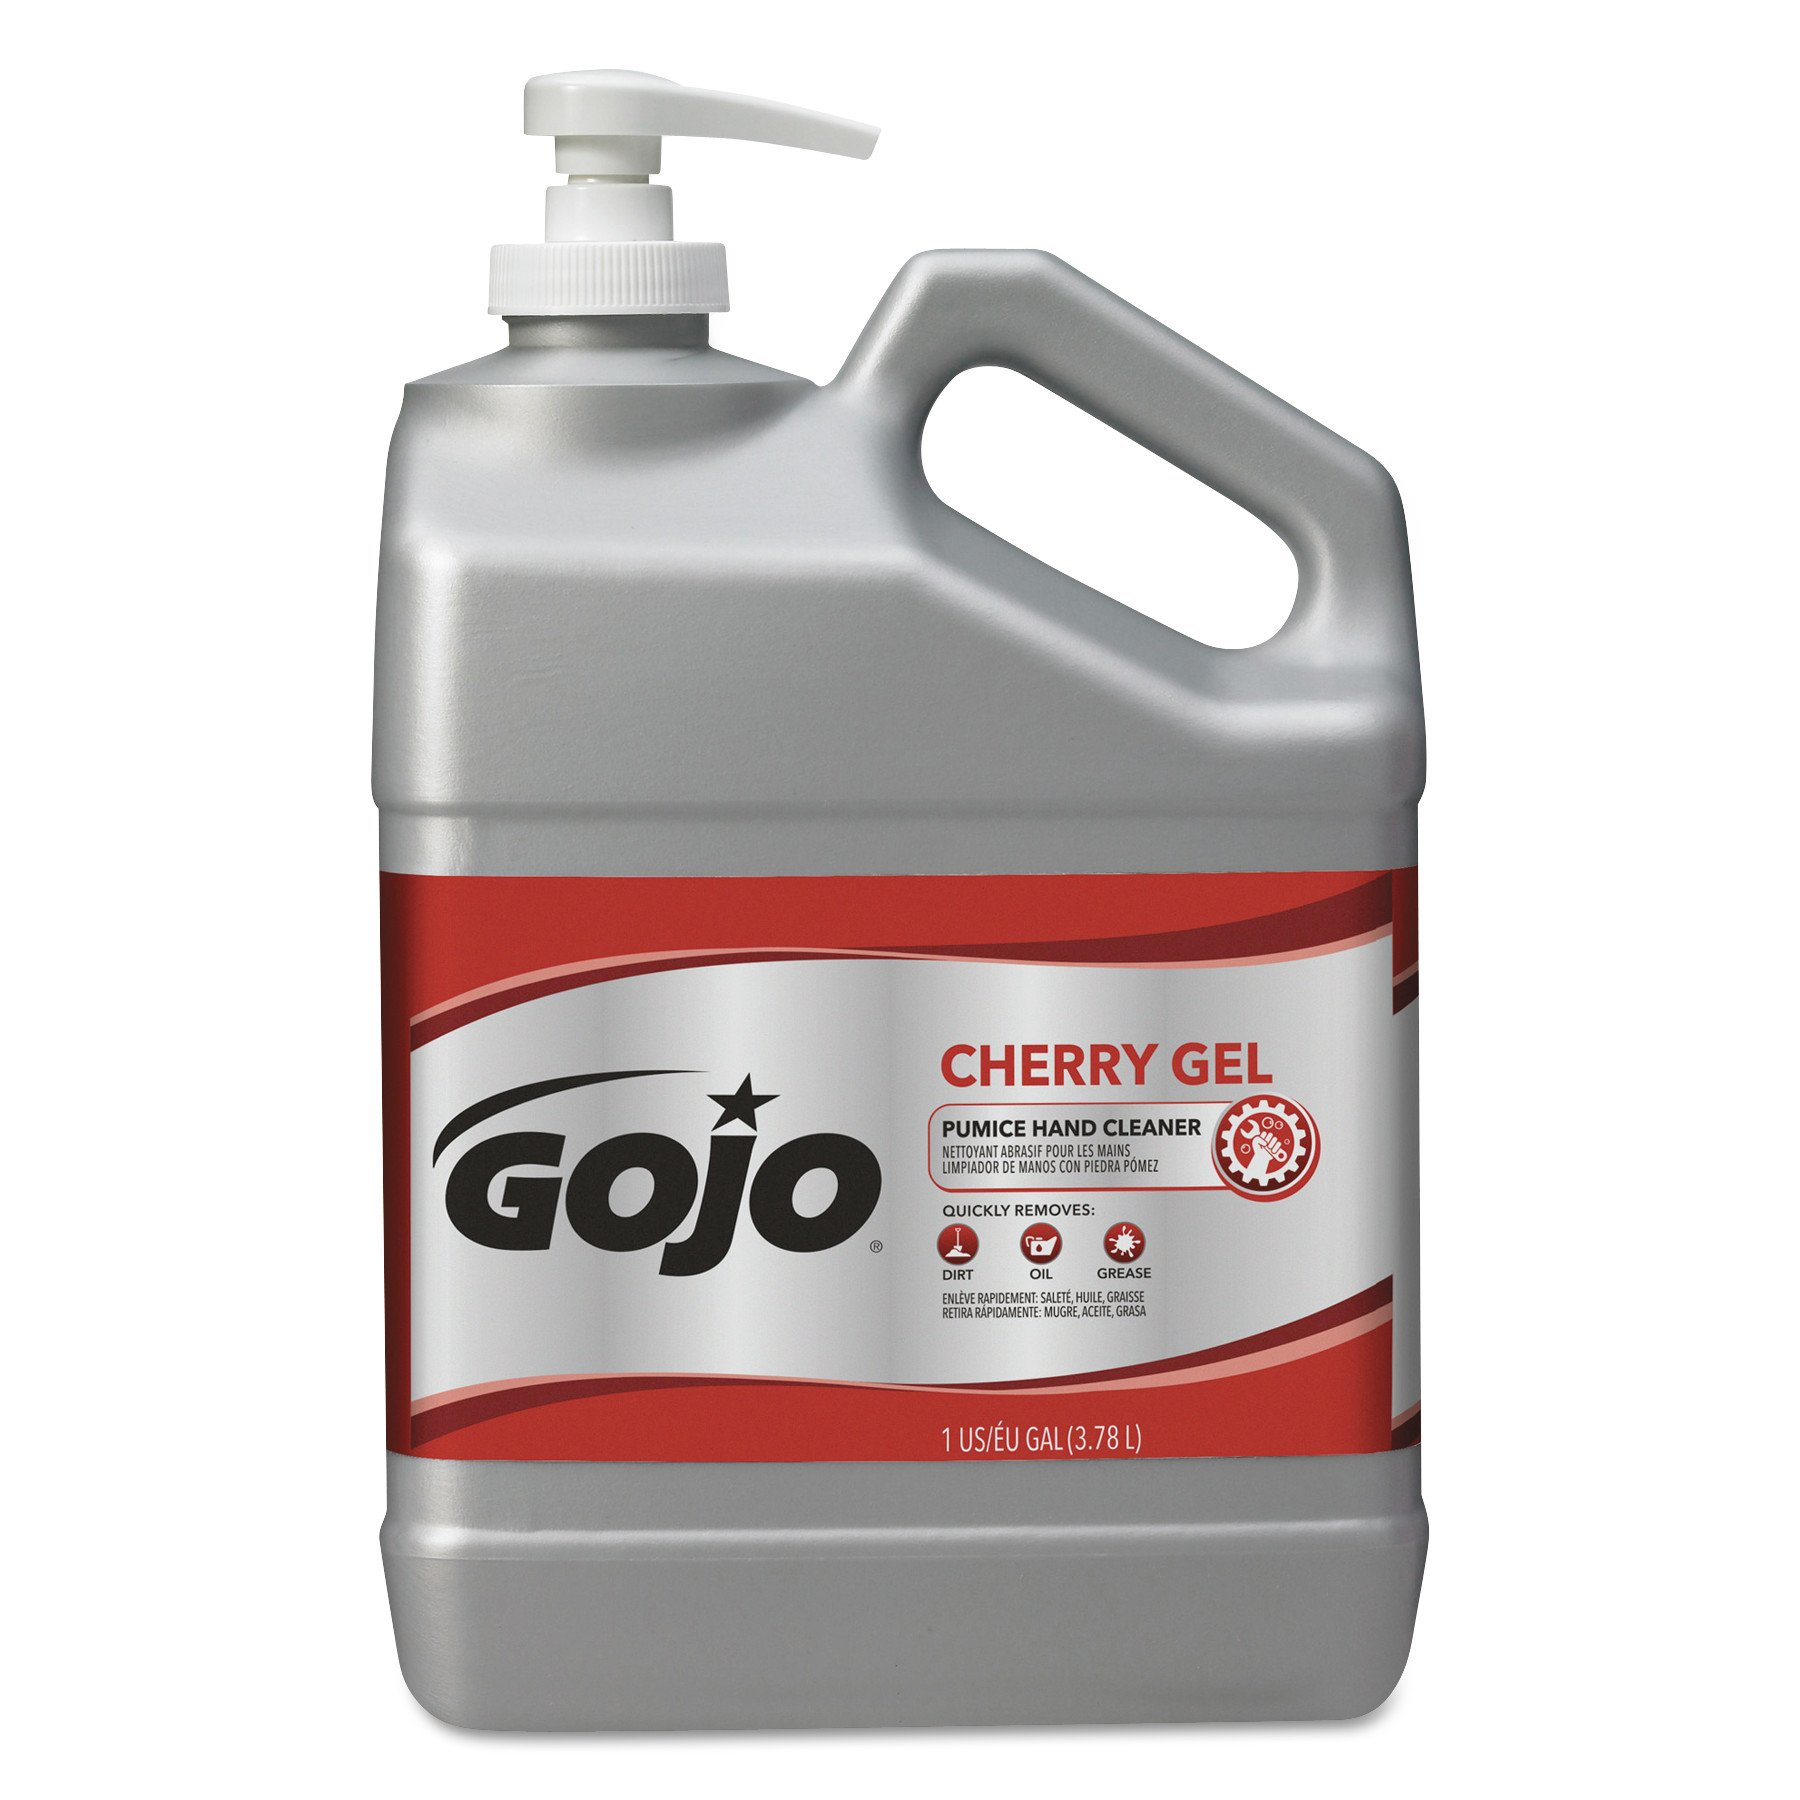 GOJO Cherry Gel Pumice Hand Cleaner, Cherry Fragrance, 1 Gallon Hand Cleaner with Pumice Scrubbers Pump Bottles – 2358-02 by Gojo (Image #1)